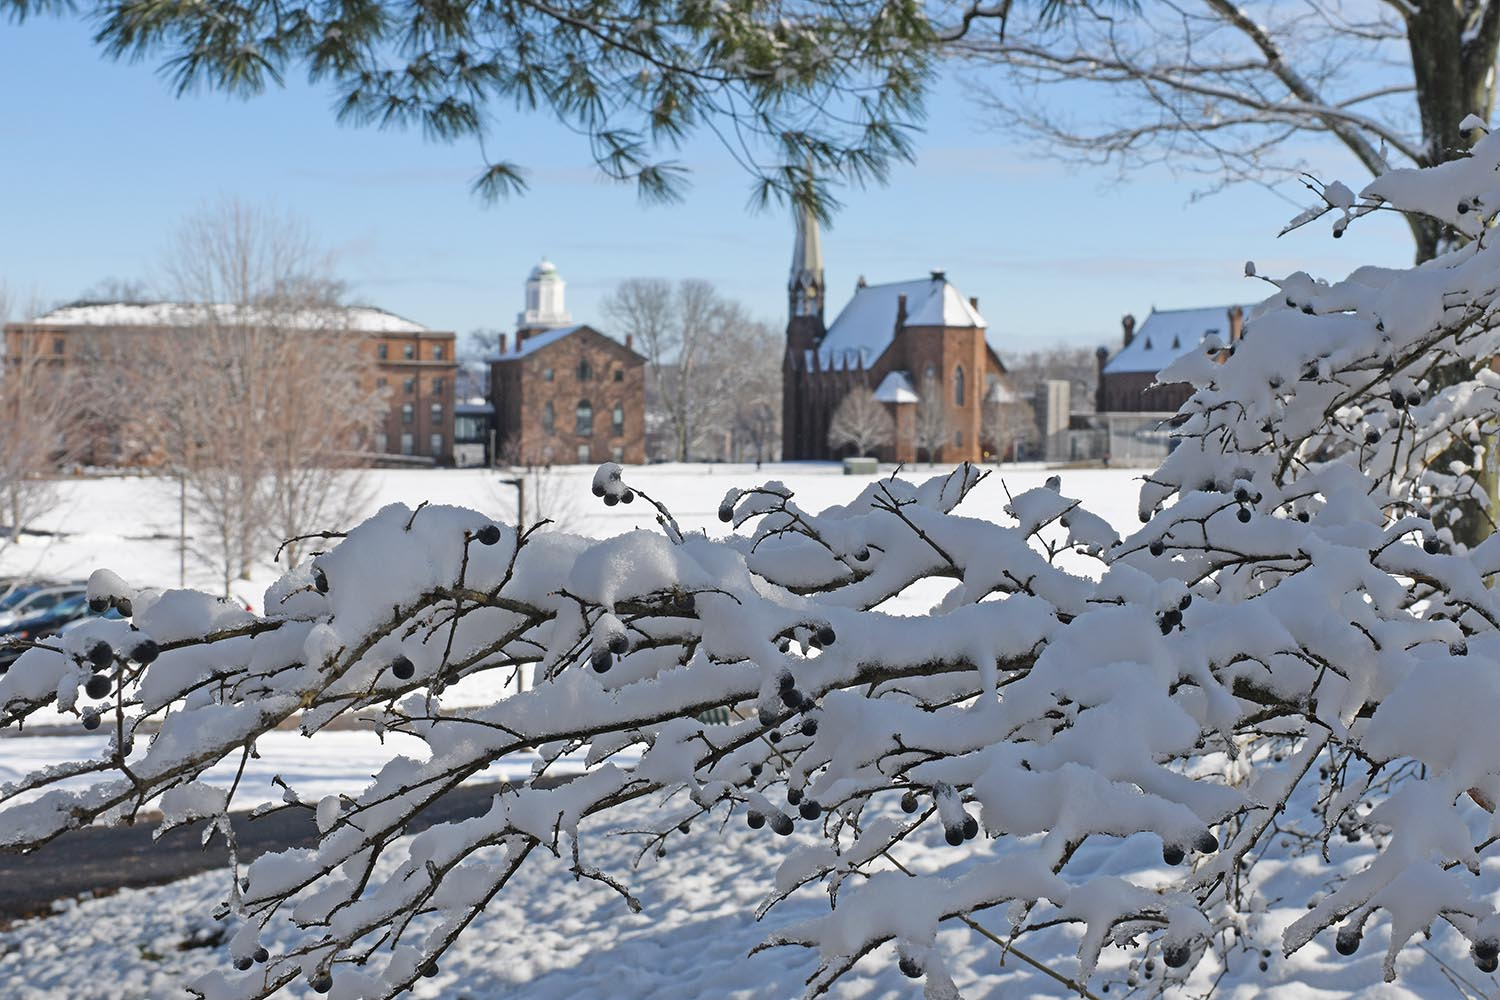 Snow lightly blanketed campus during the morning hours of Dec. 11. By noon, much of the snow had started to melt.